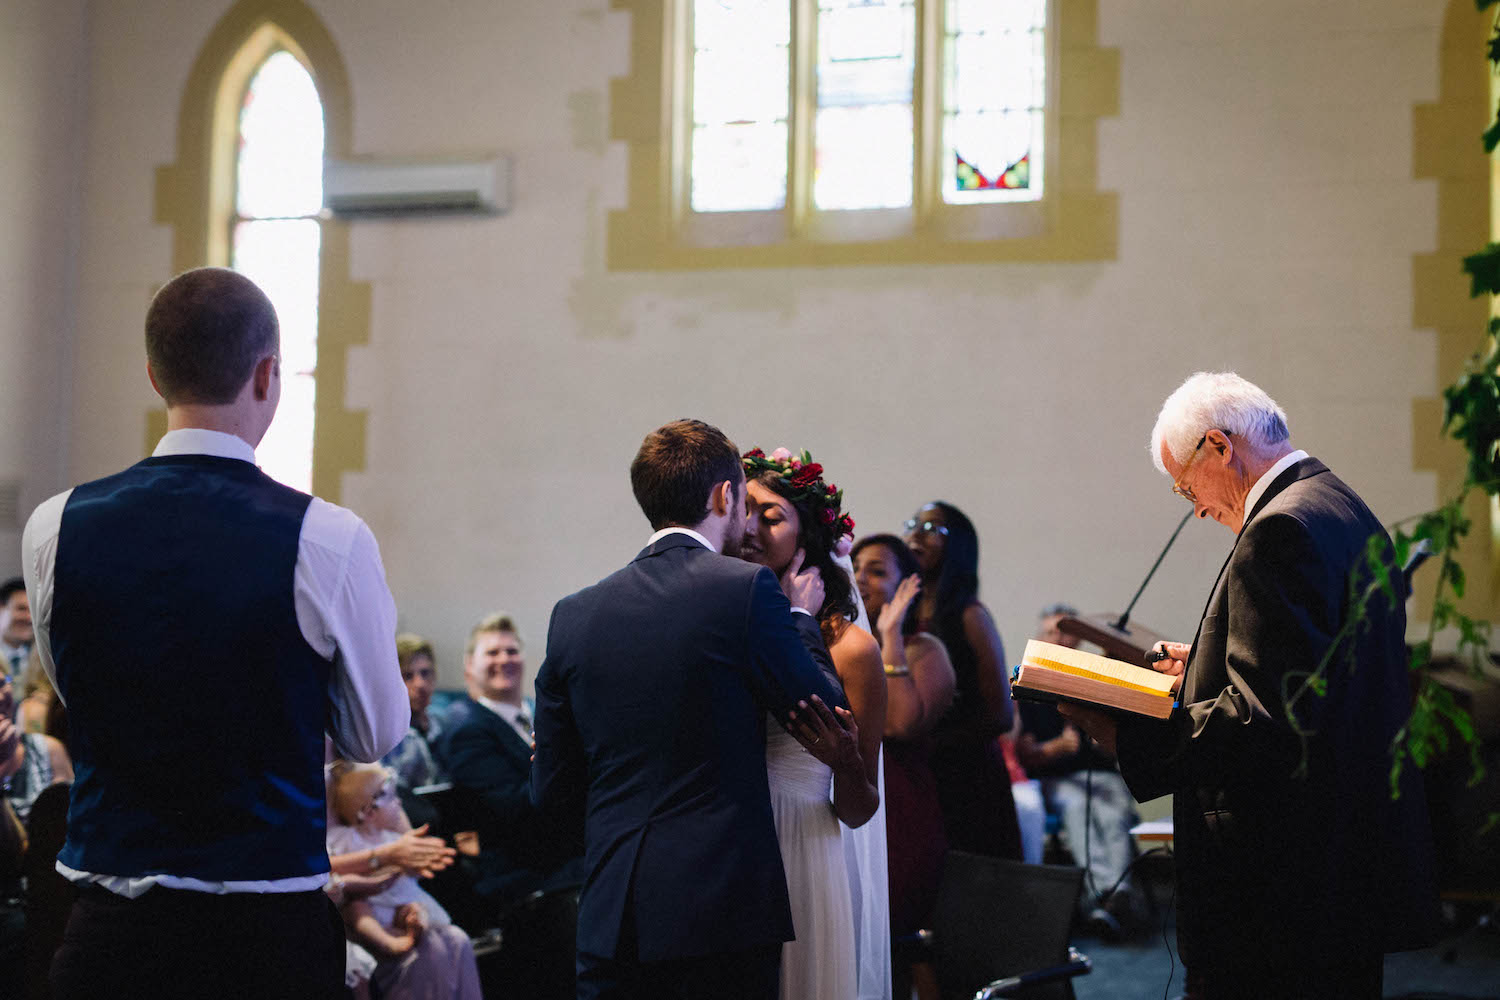 The bride & groom's first kiss at the end of their ceremony at St Matthew's Anglican Church.